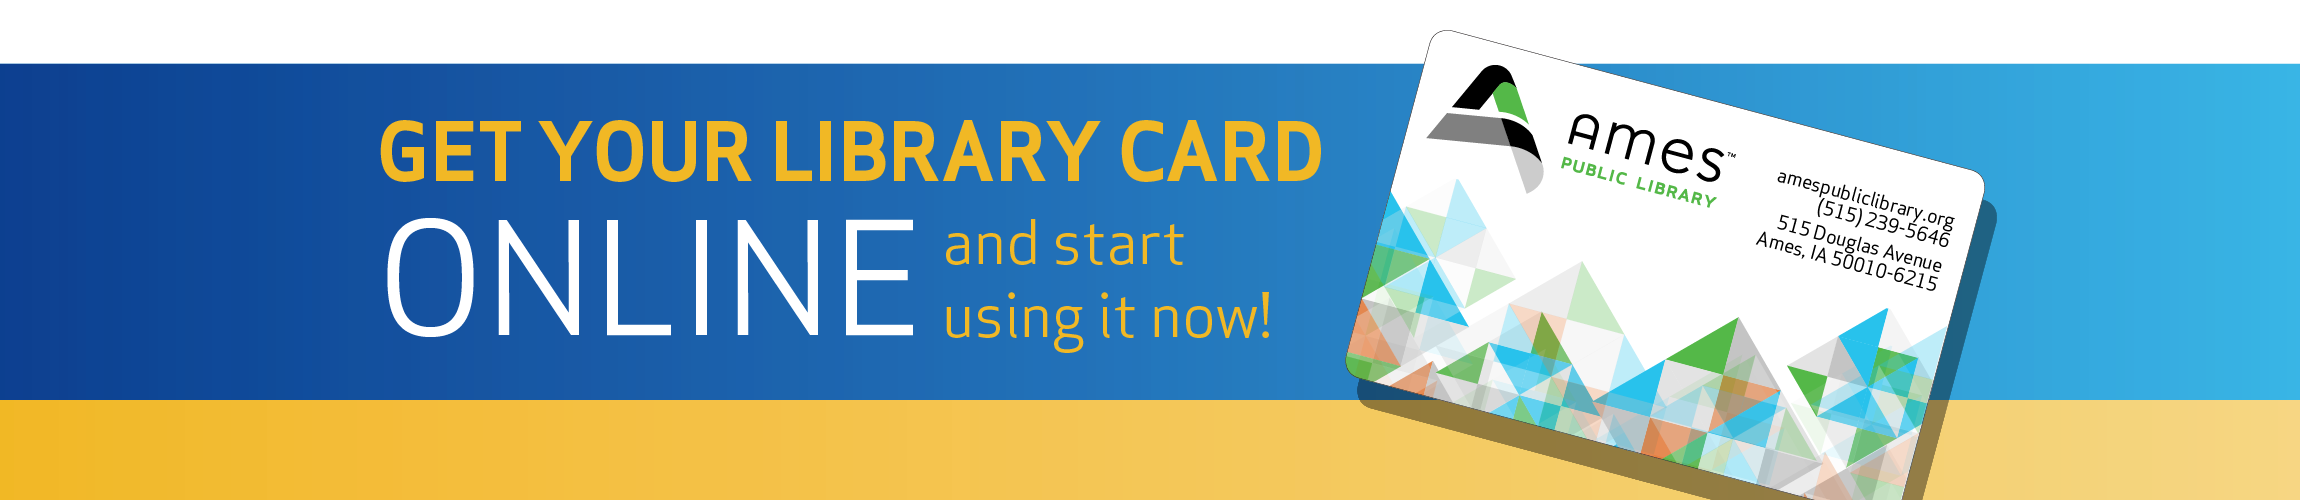 Get your library card online and start using it now!